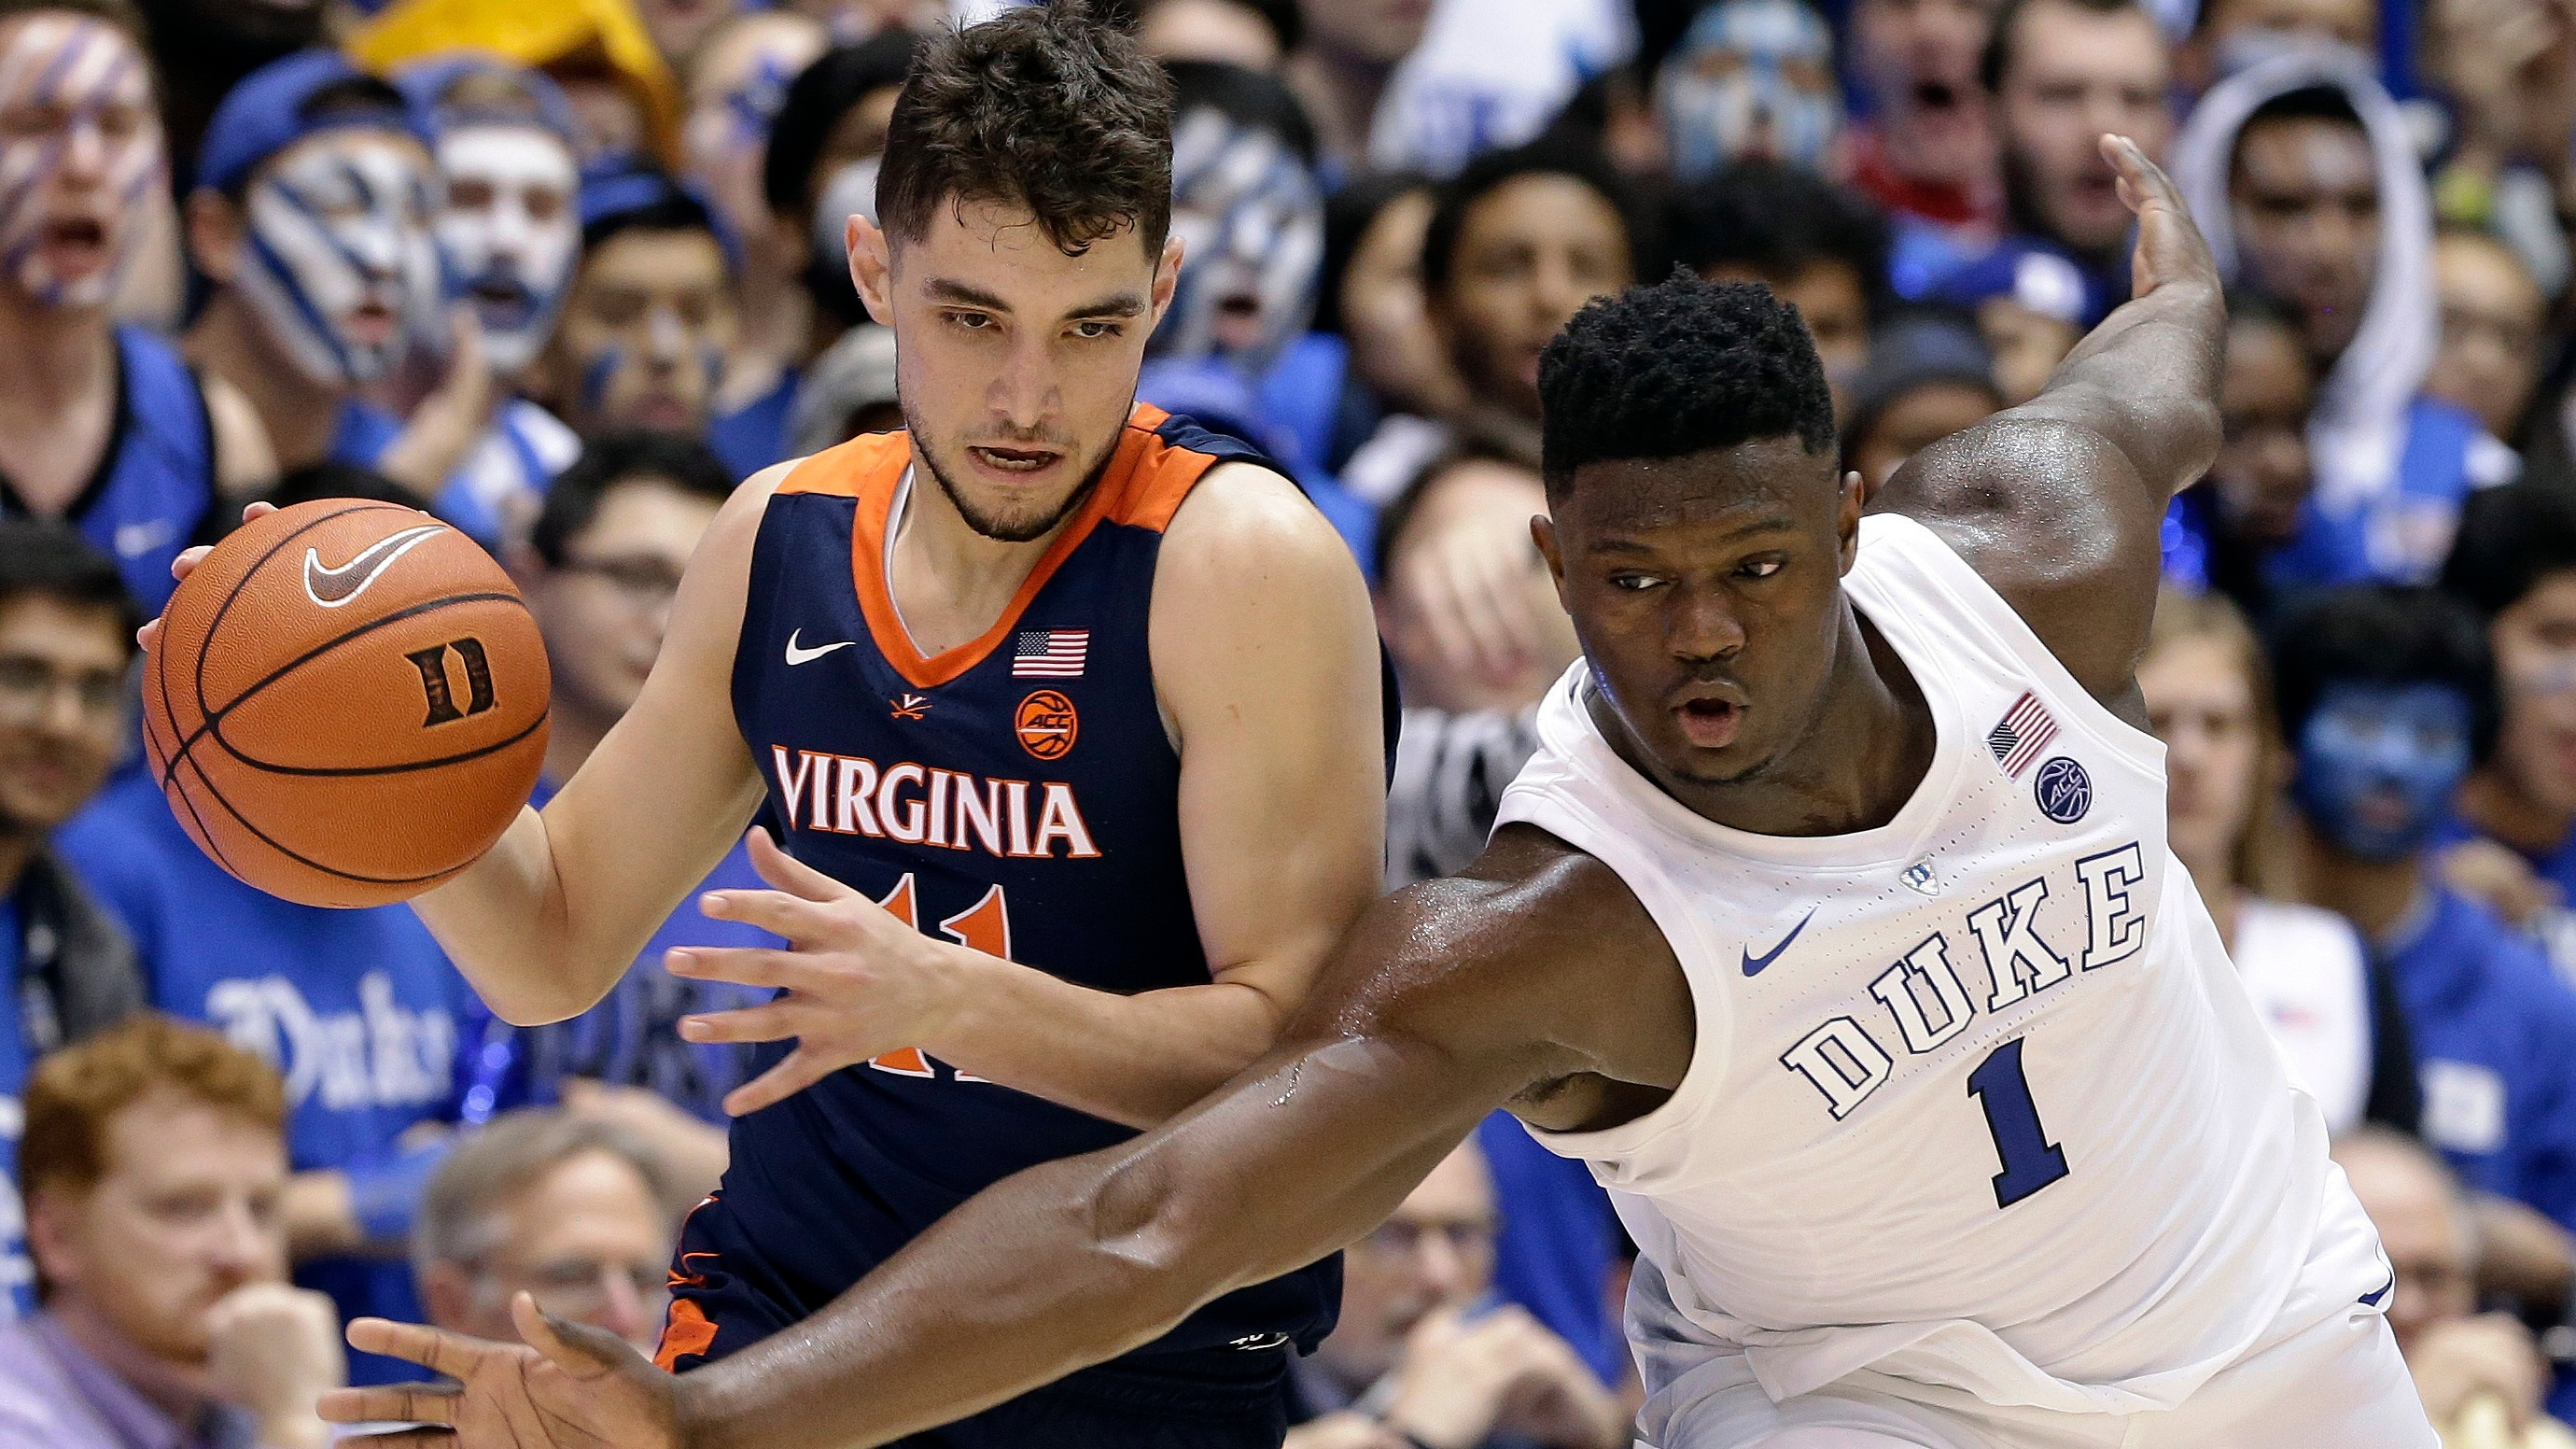 ef9e5b0bb6ae Saturday college basketball betting odds  Duke a rare underdog in rematch vs.  Virginia